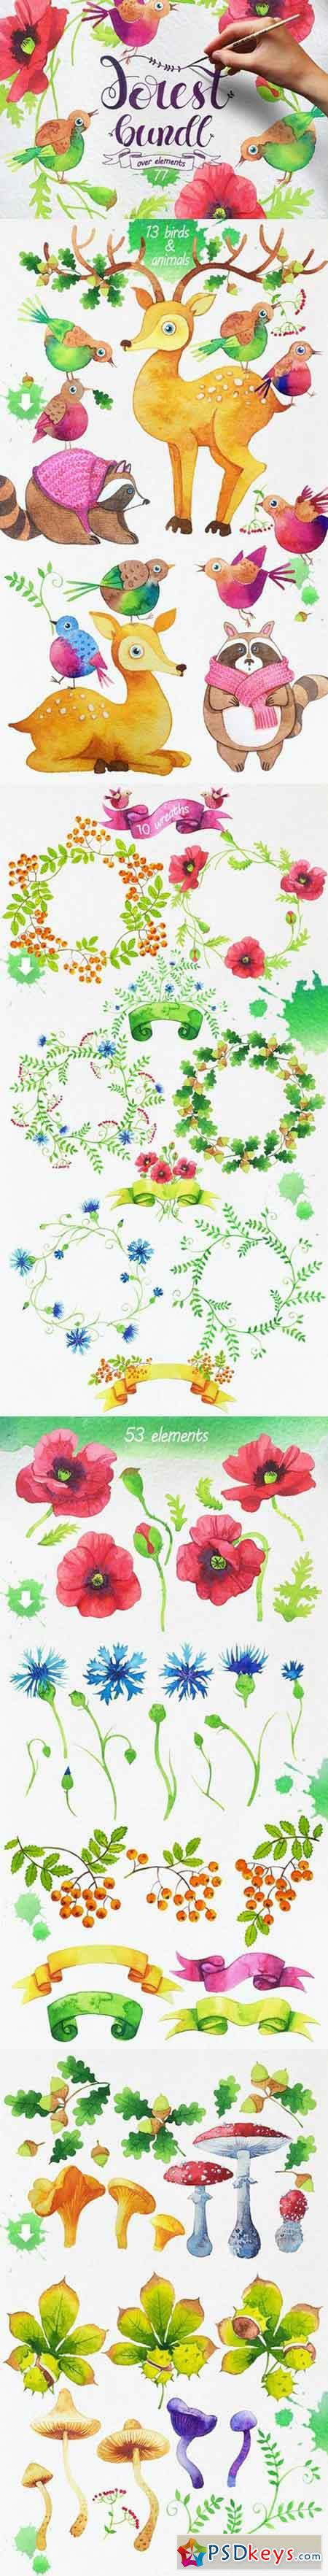 Watercolor Forest Bundle 729614